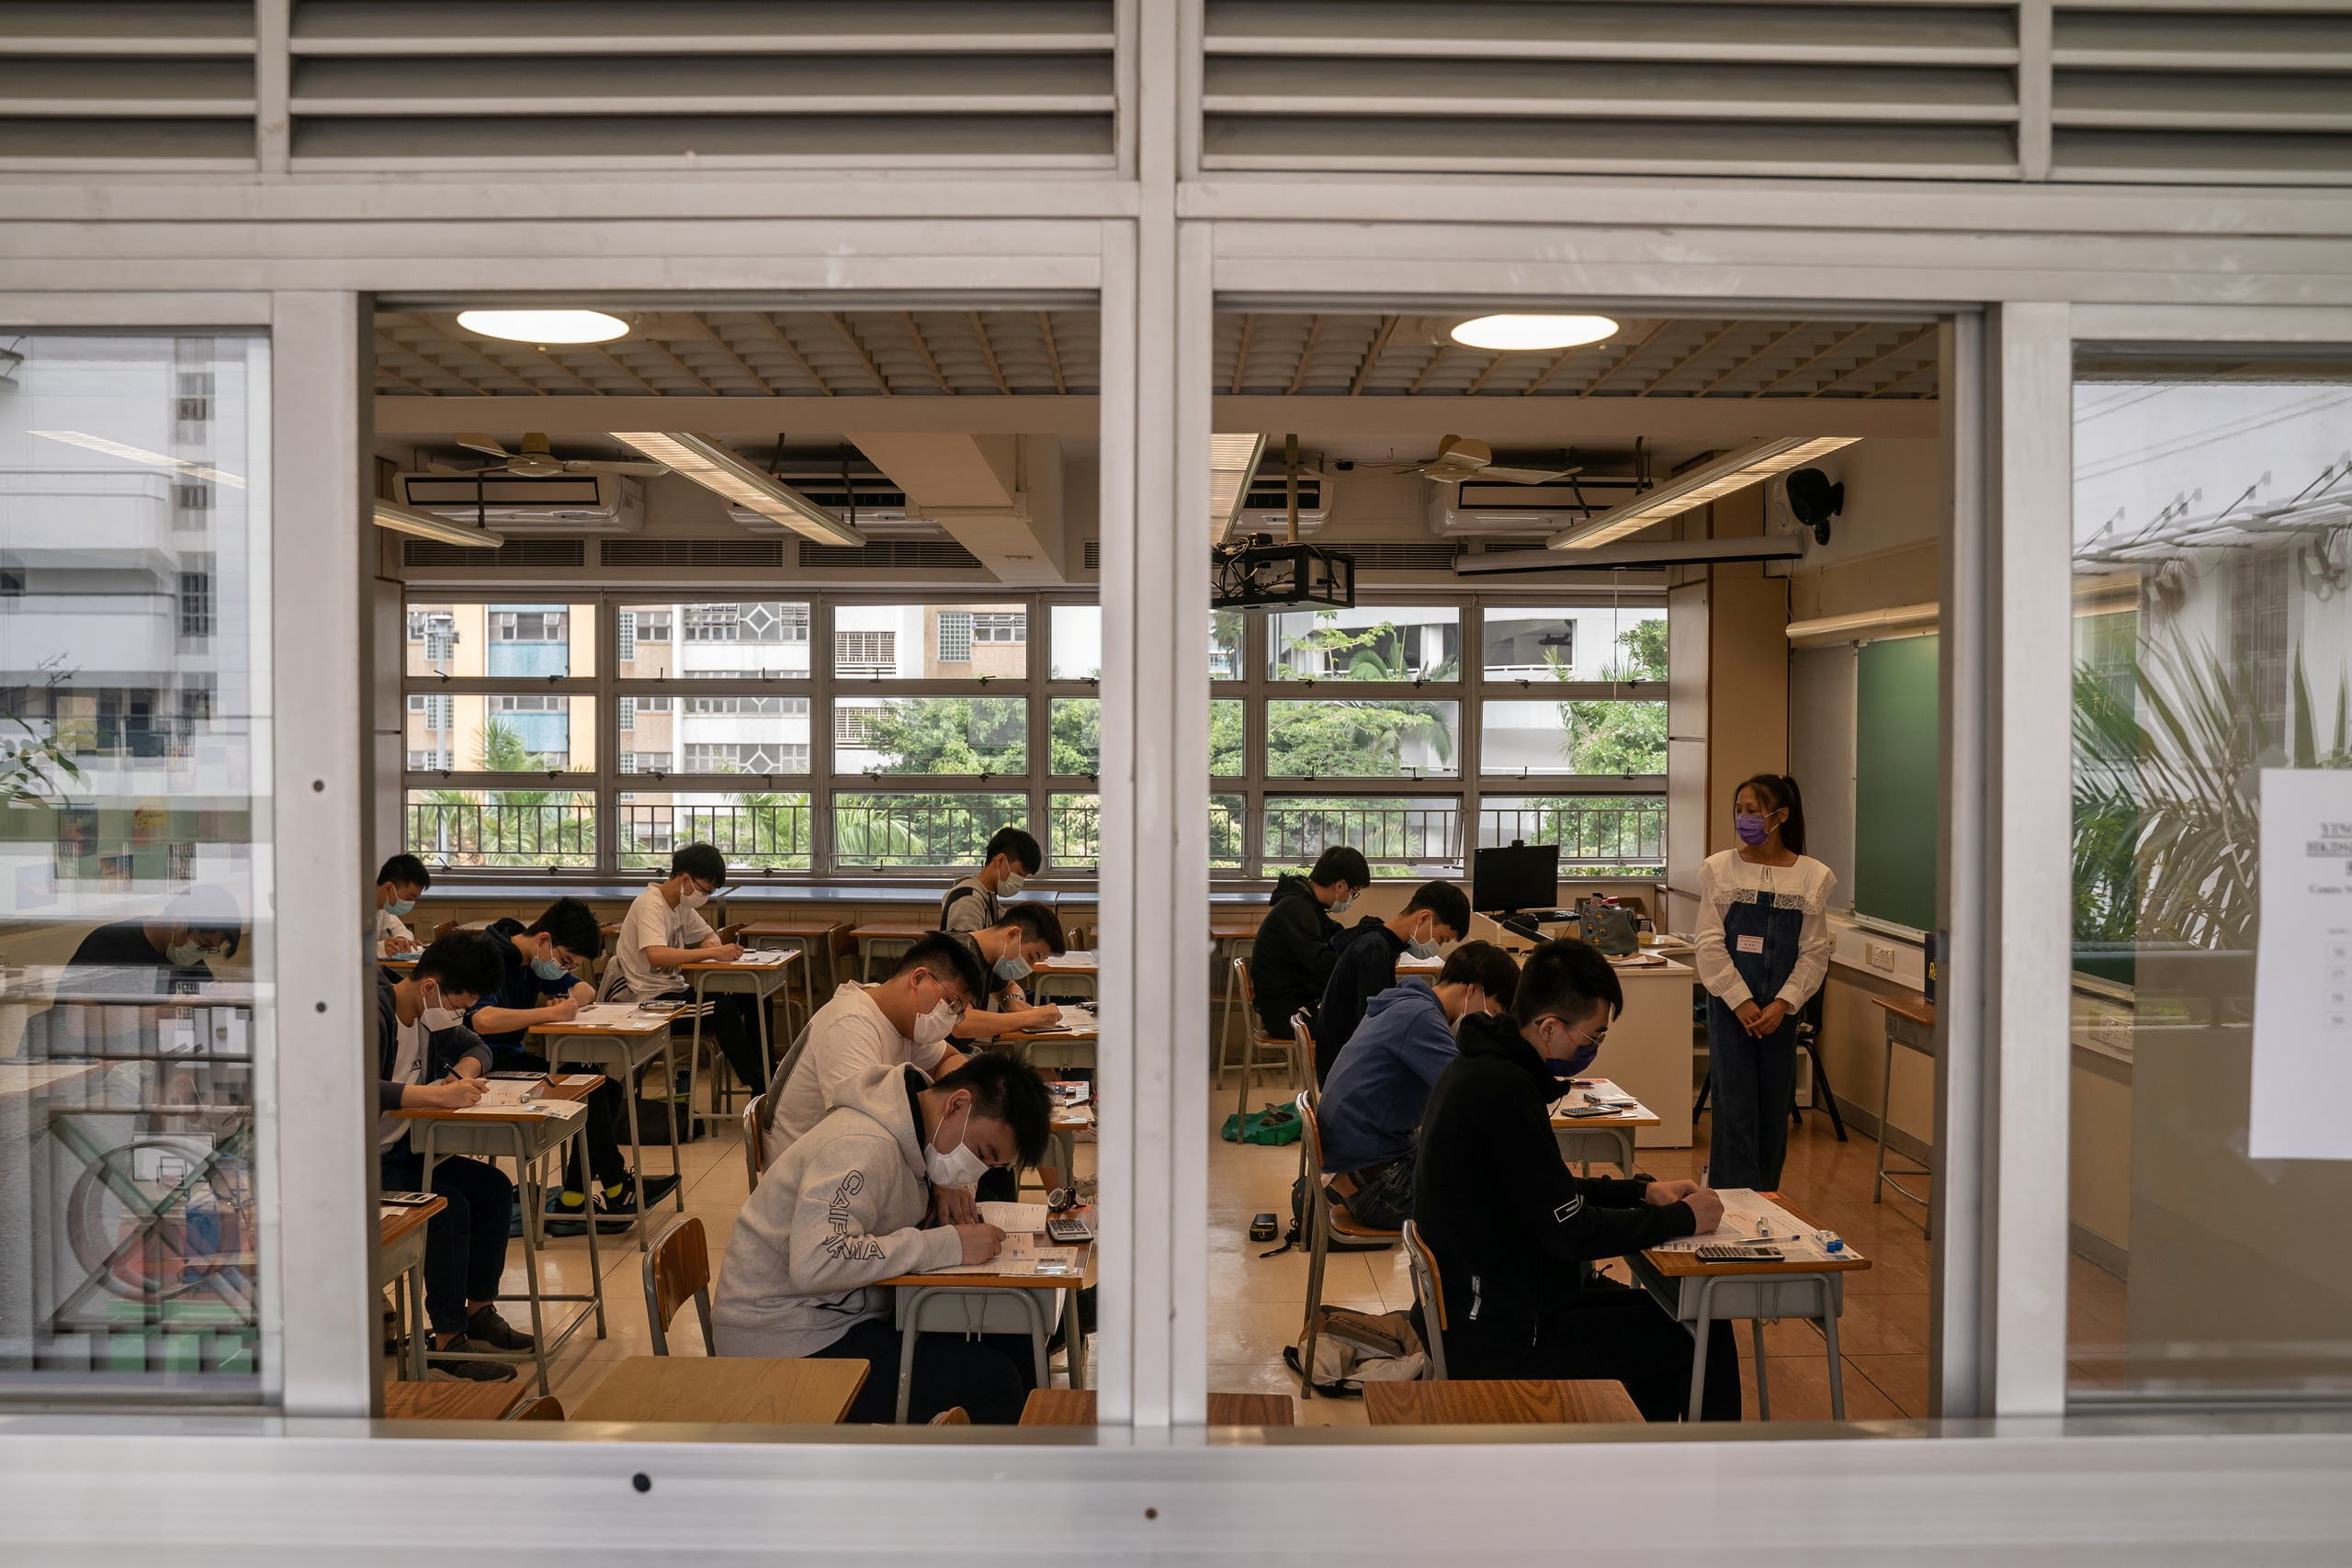 Students sit for the Diploma of Secondary Education (DSE) exams on April 26, 2021 in Hong Kong, China. (Reuters)